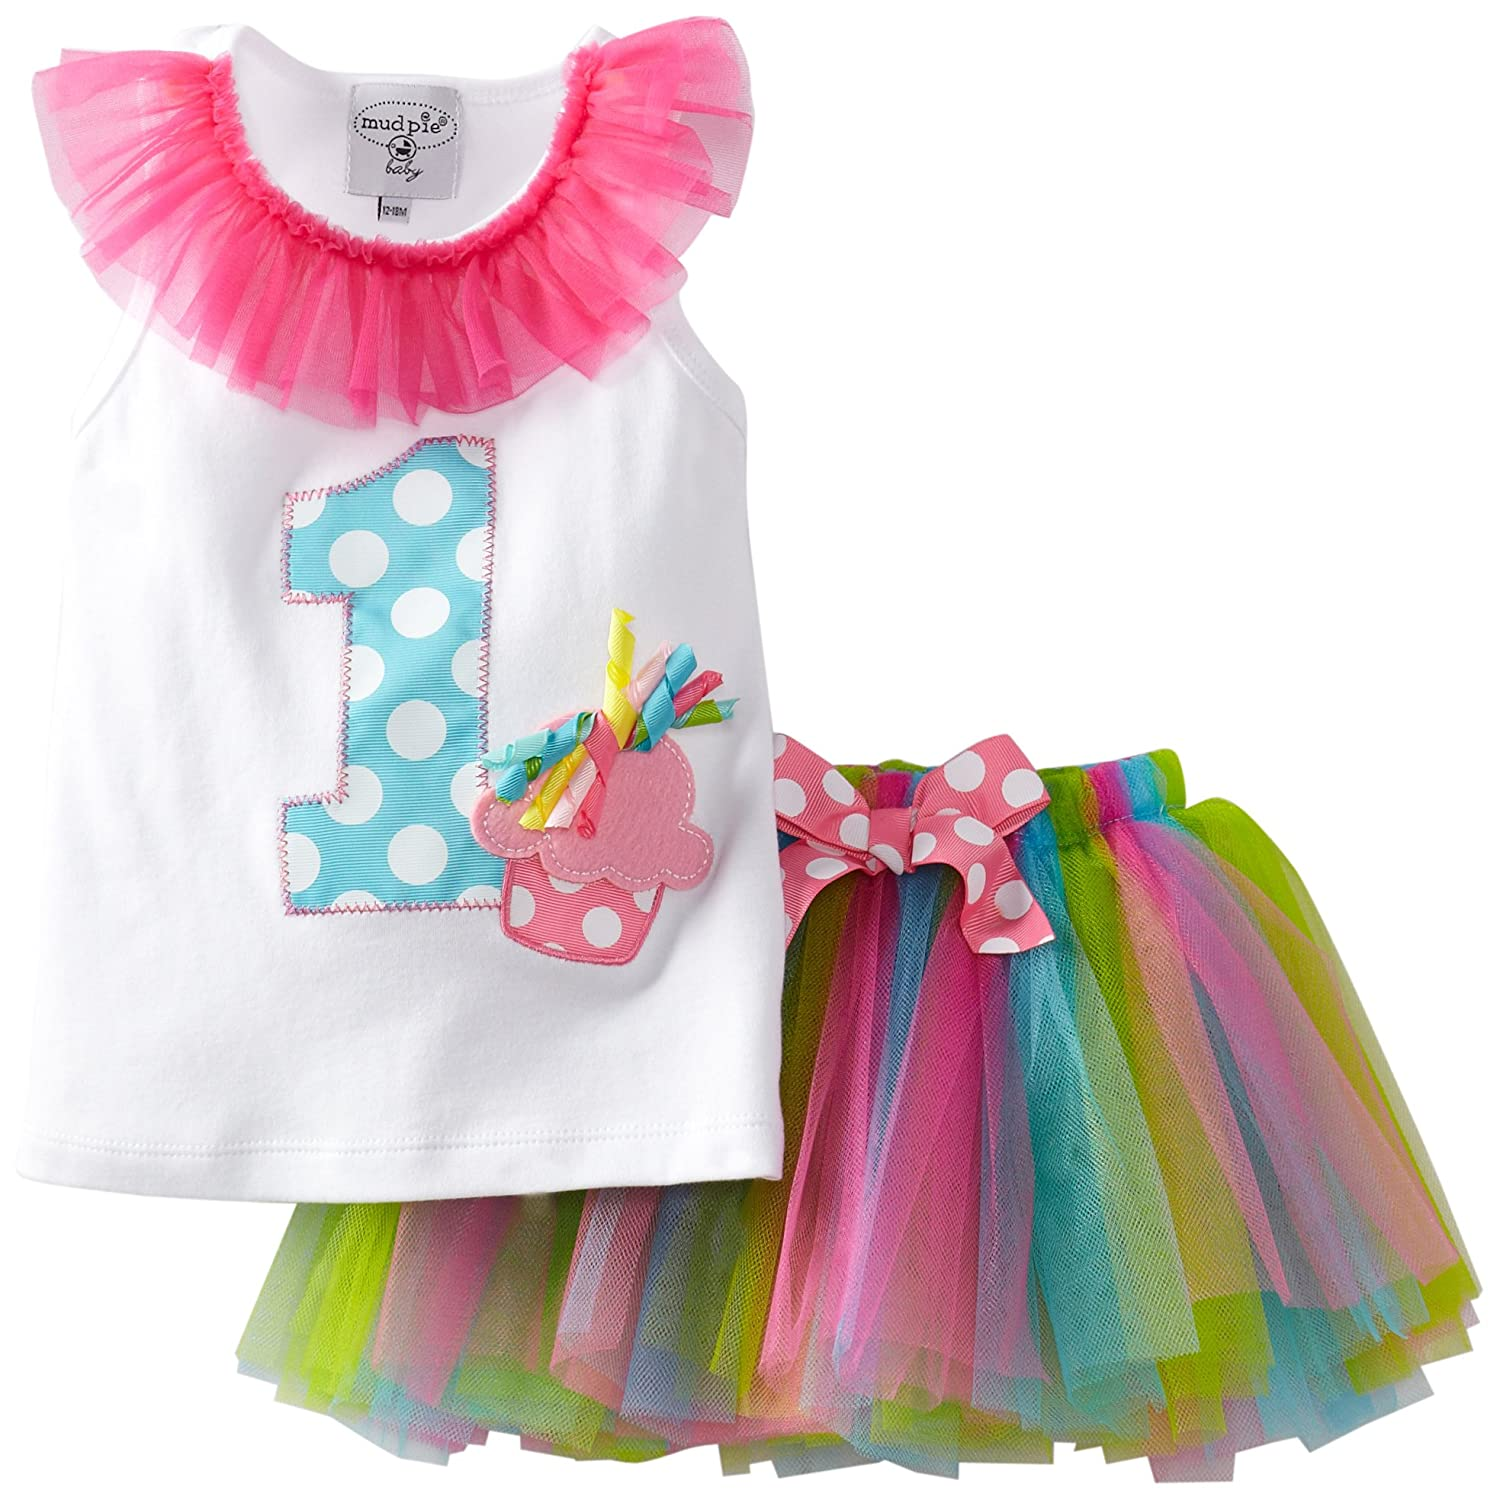 Mud Pie Little Girls Im 2 Tutu Set Amazon Clothing Accessories